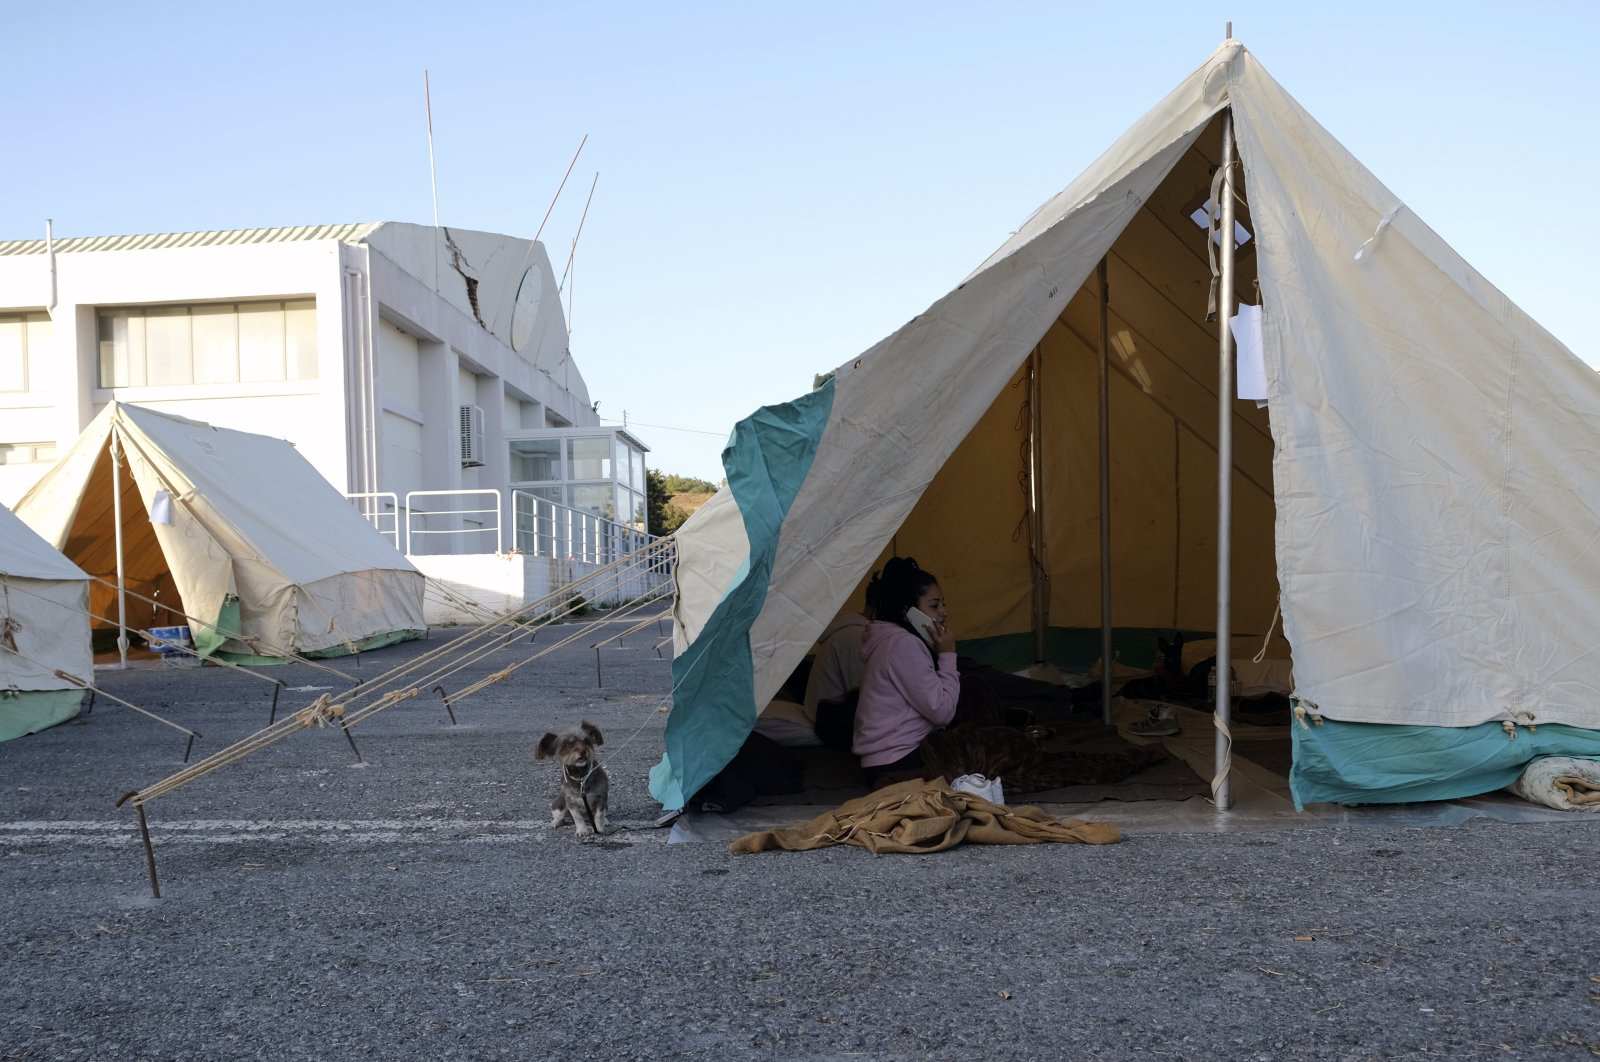 A woman speaks on her cellphone as a dog stands outside a tent in Arkalochori village on the southern island of Crete, Greece, Tuesday, Sept. 28, 2021. (AP Photo)